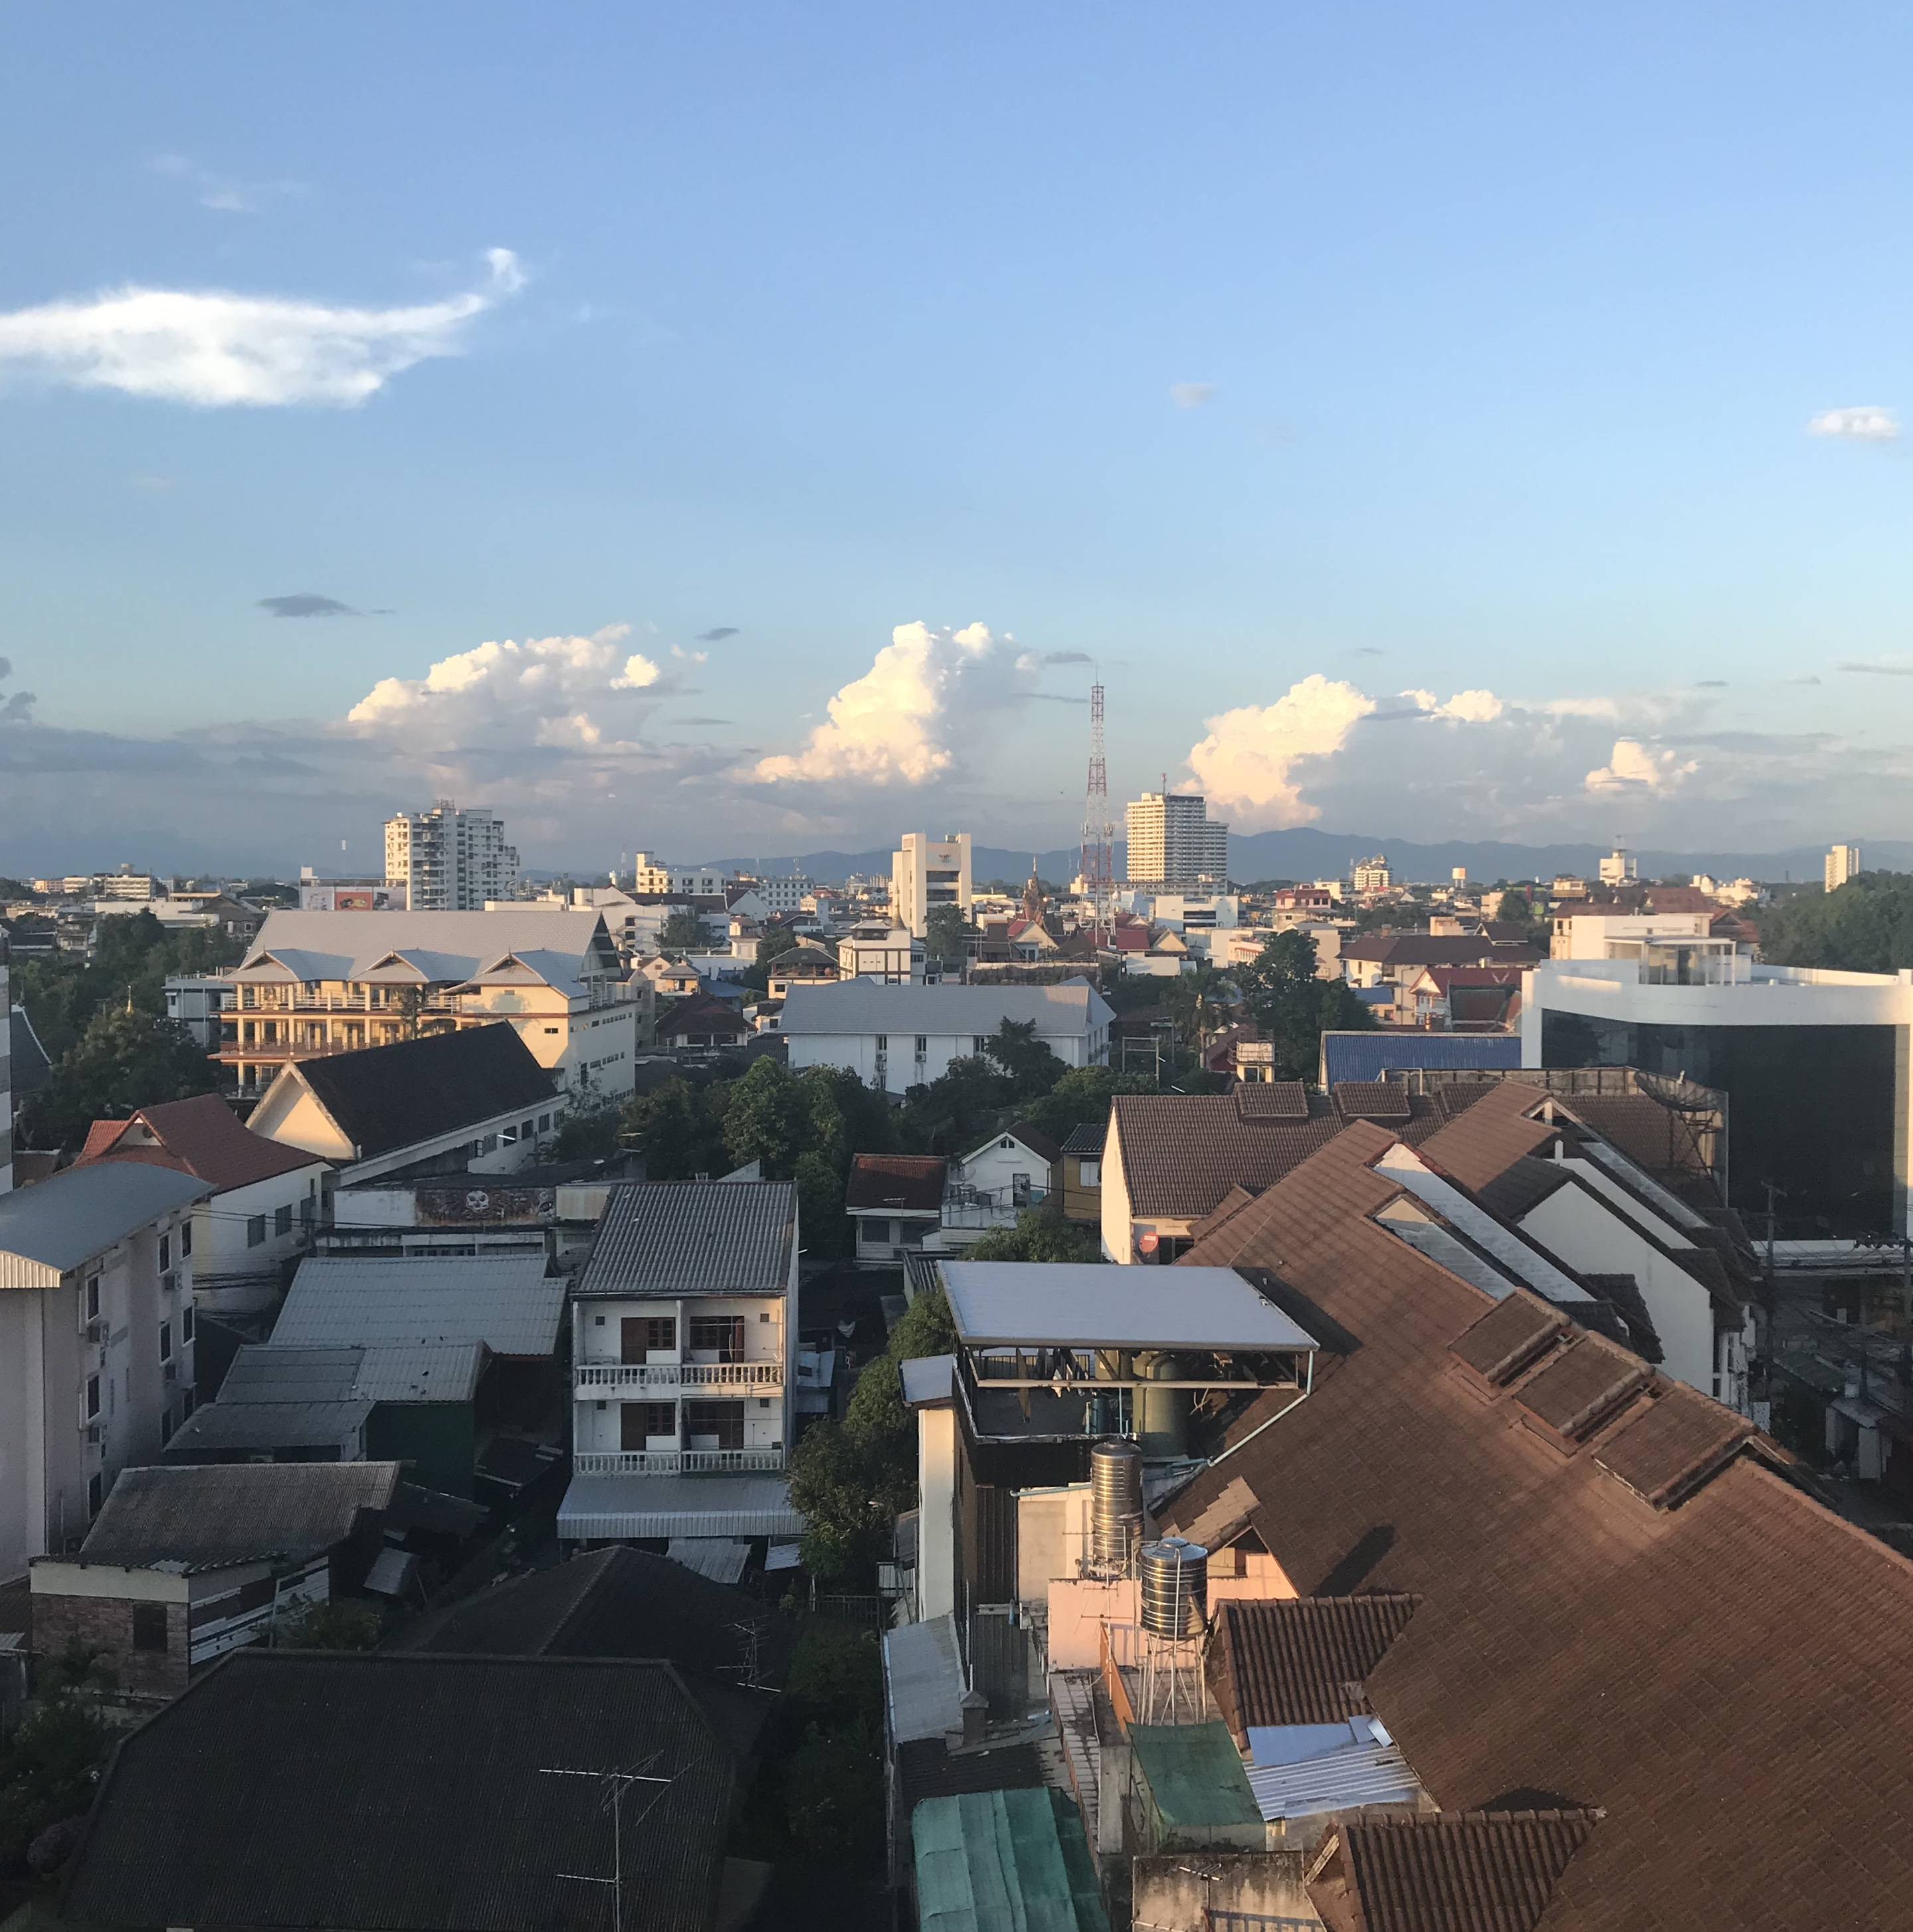 10 Things That Surprised Me About Chiang Mai